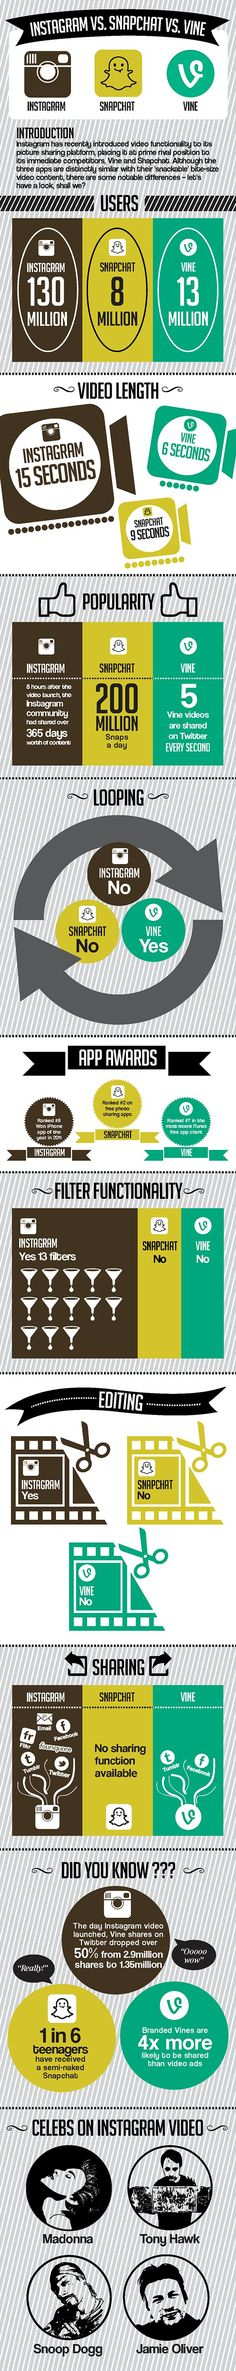 #Instagram vs #Snapchat vs #Vine via @angela4design #Infographic #socialmedia